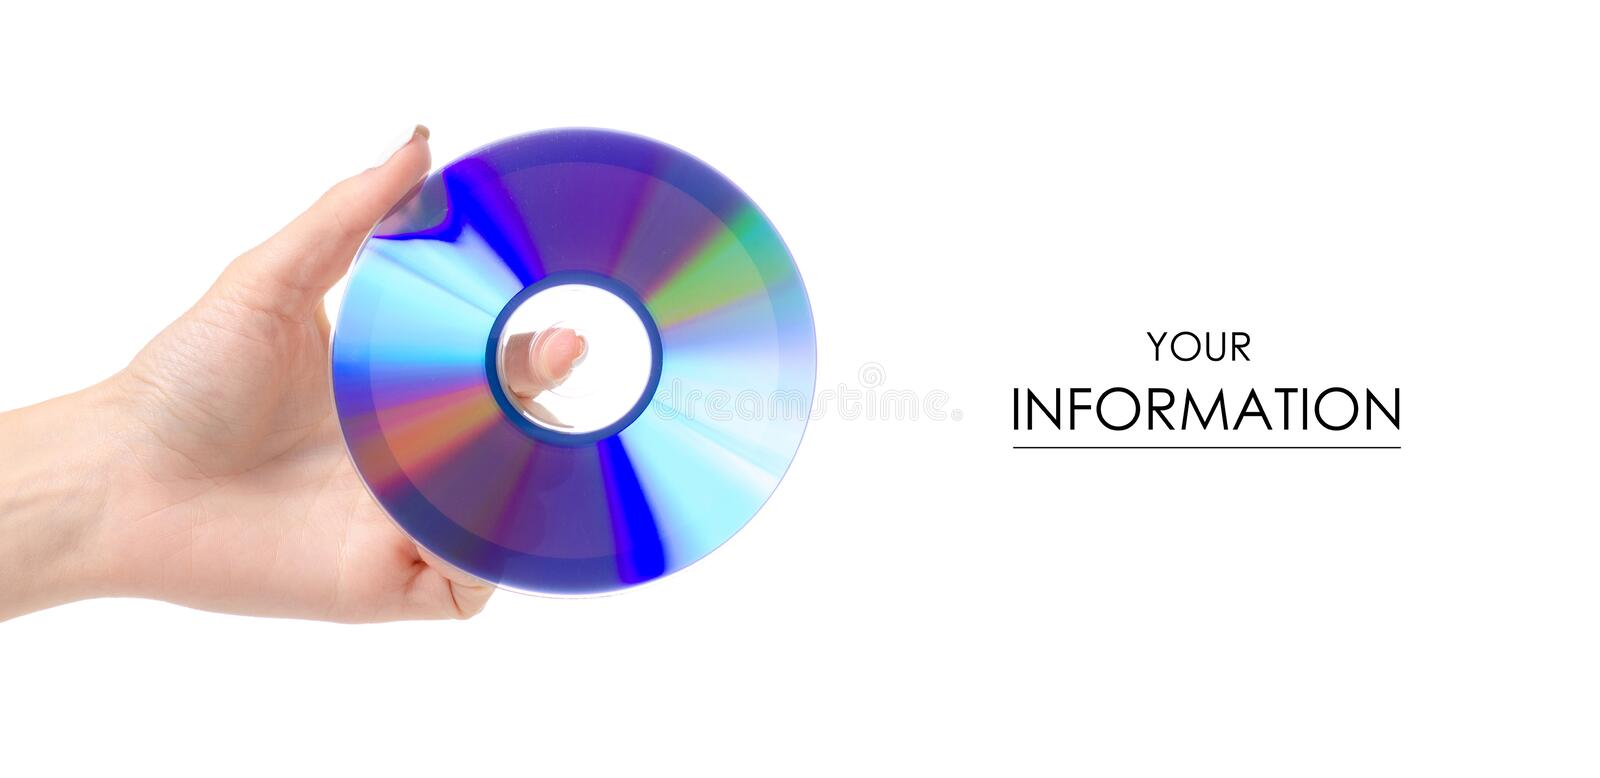 Disc in hand pattern. On white background. Isolation royalty free stock photos